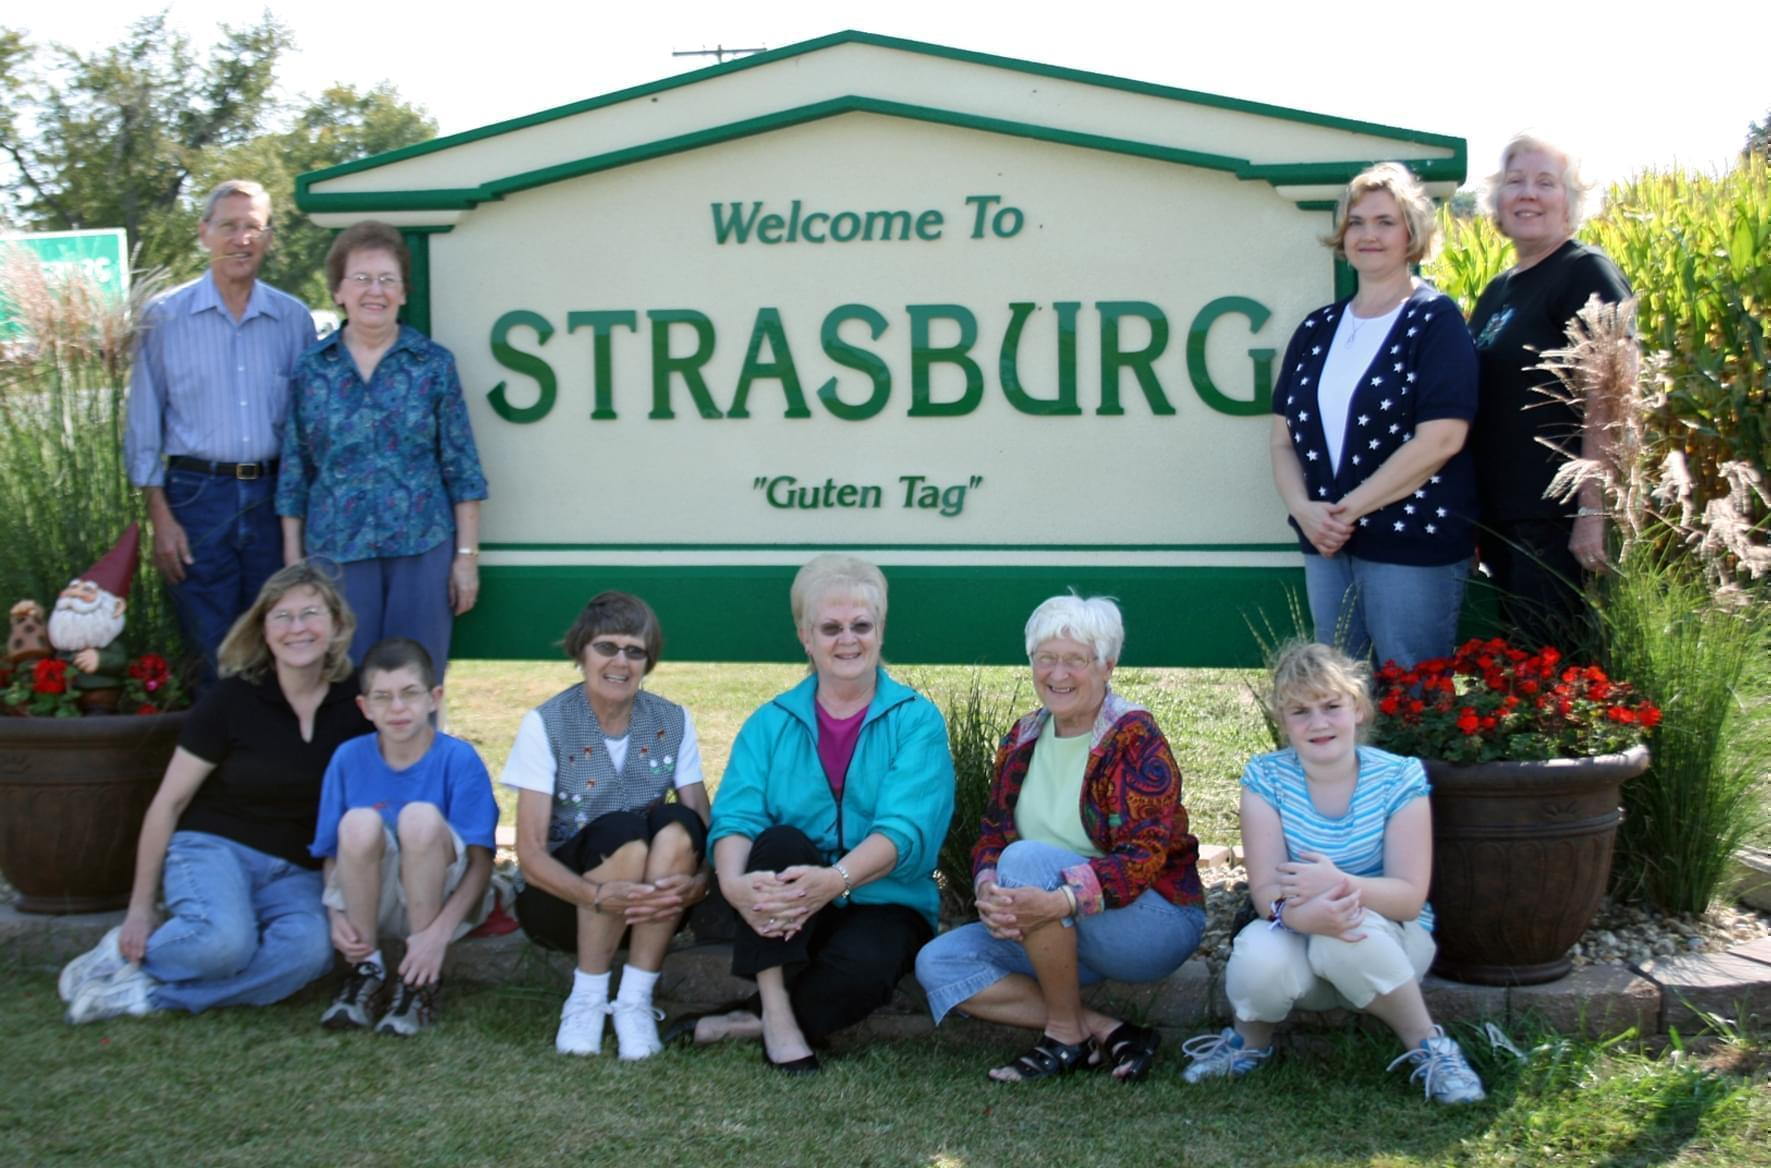 Residents gathered around Strasburg welcome sign.